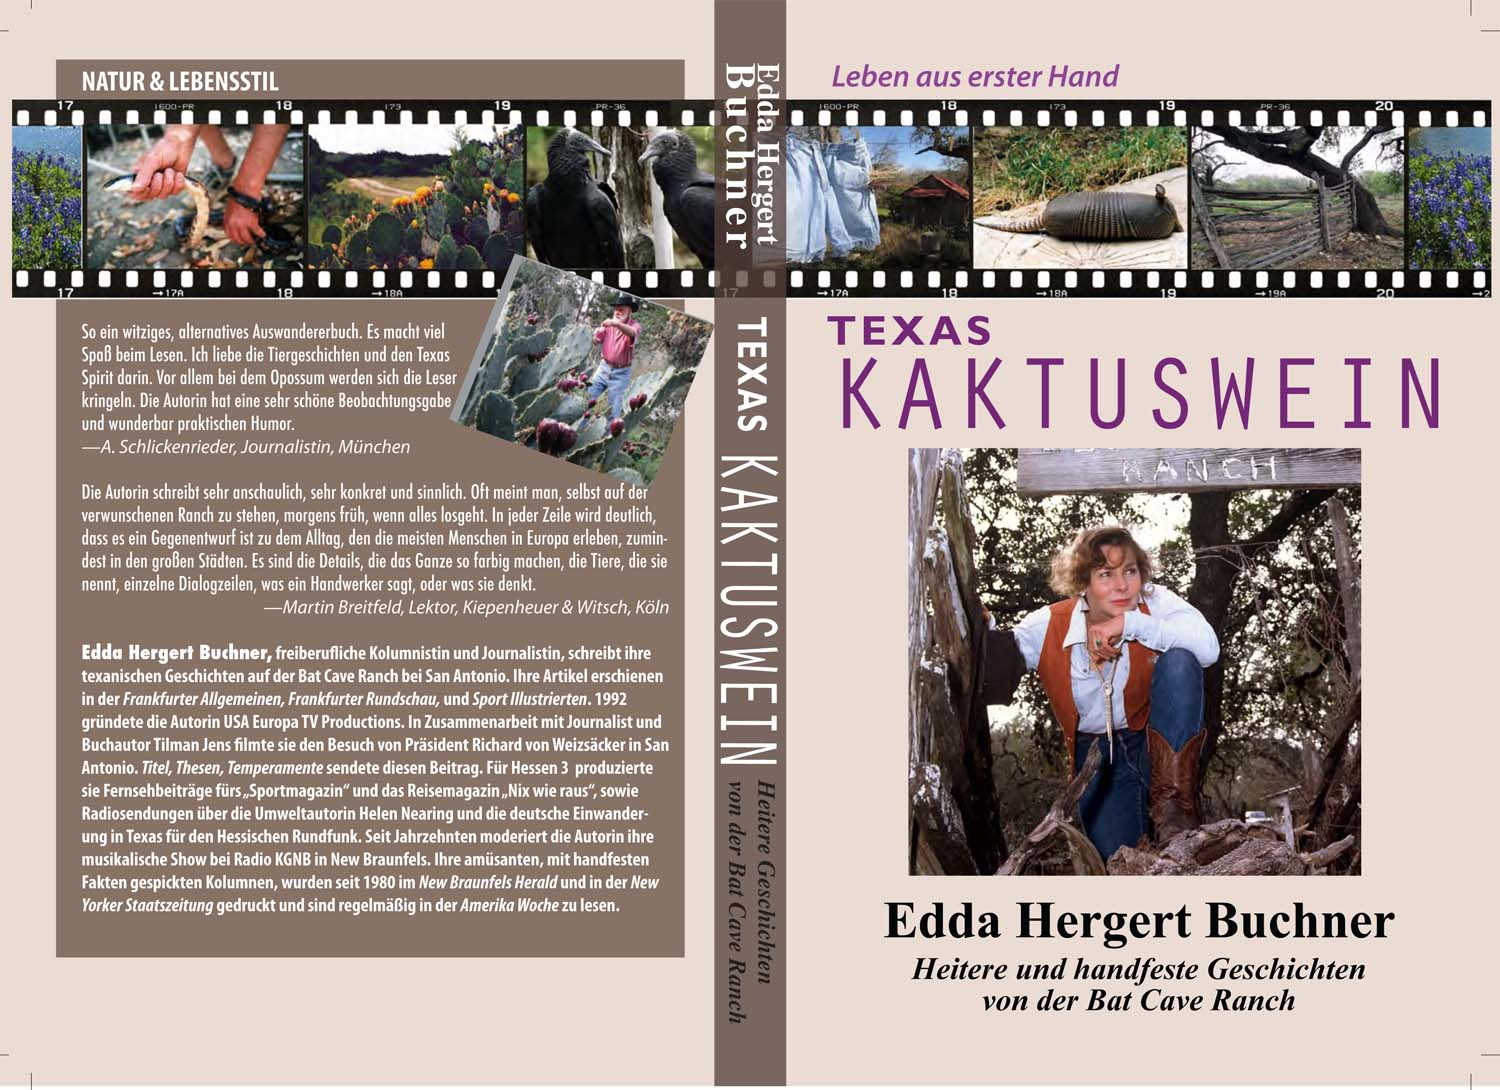 Texas Kaktuswein Cover